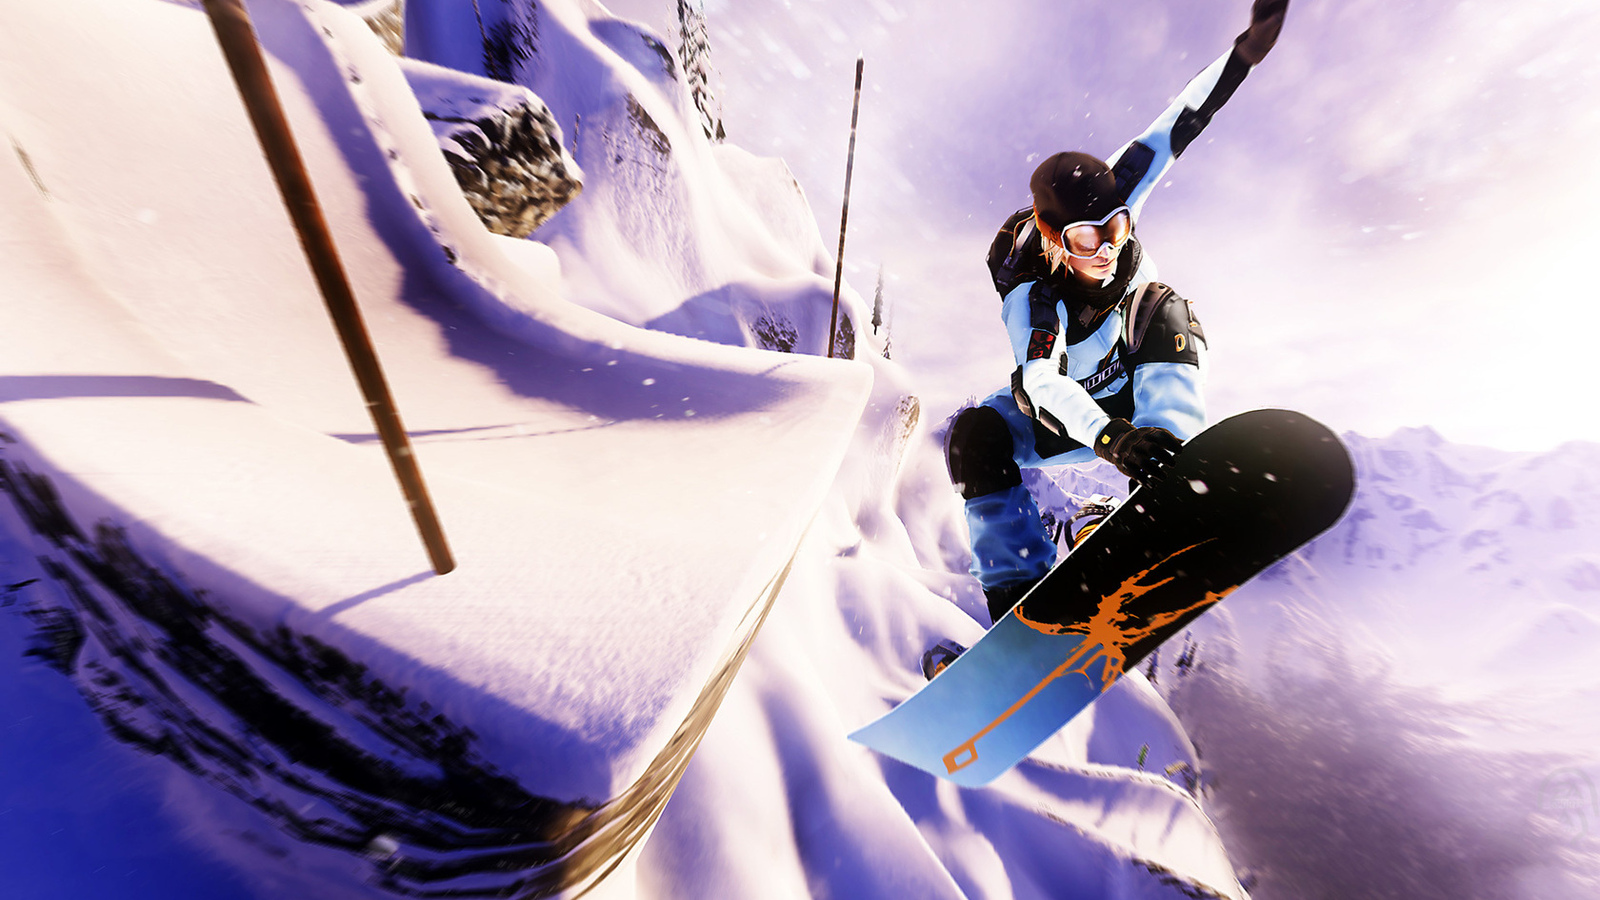 the art of snowboarding The eternal beauty of snowboarding - movie review the eternal beauty of snowboarding and heartwarming for anyone who truly loves the art of snowboarding.